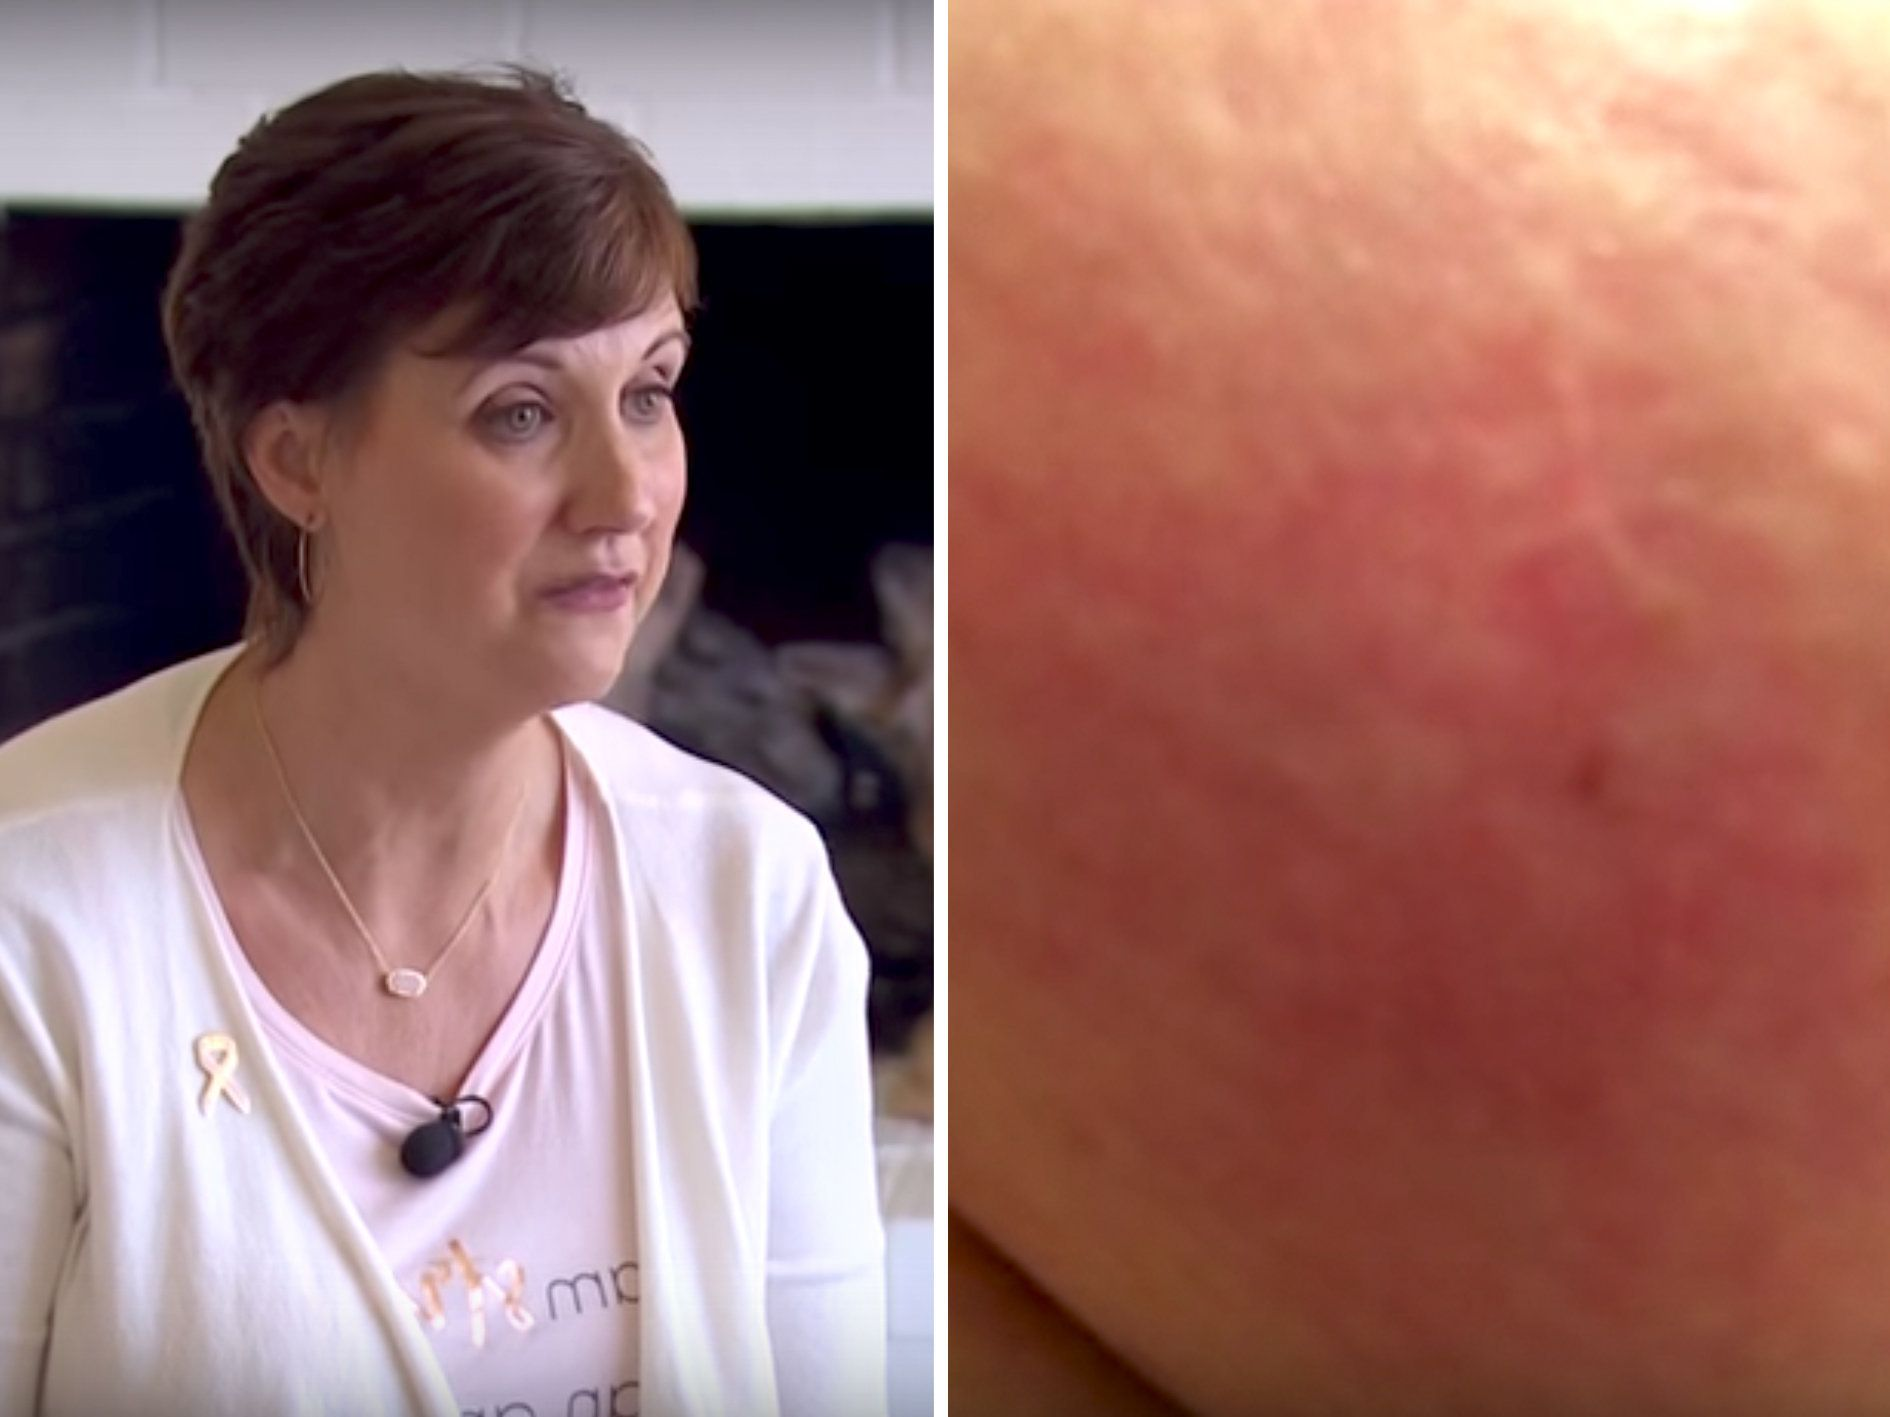 Woman Shares Photo Of Inflammatory Breast Cancer Symptom In Hope It'll Save